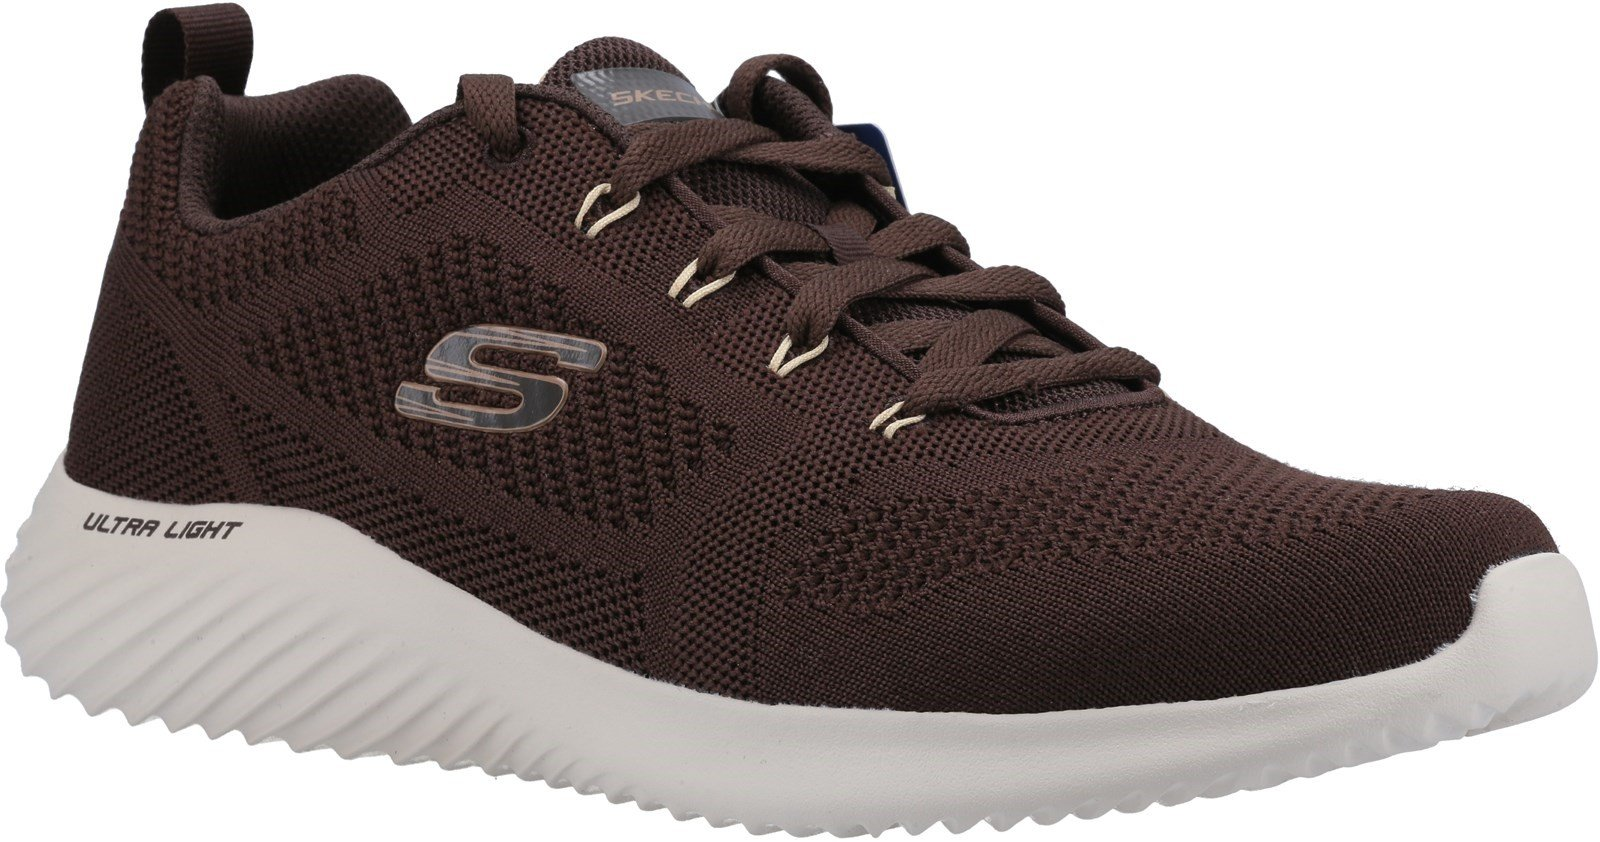 Skechers Men's Bounder Rinstet Lace Up Trainer Various Colours 31082 - Brown/Tan 6